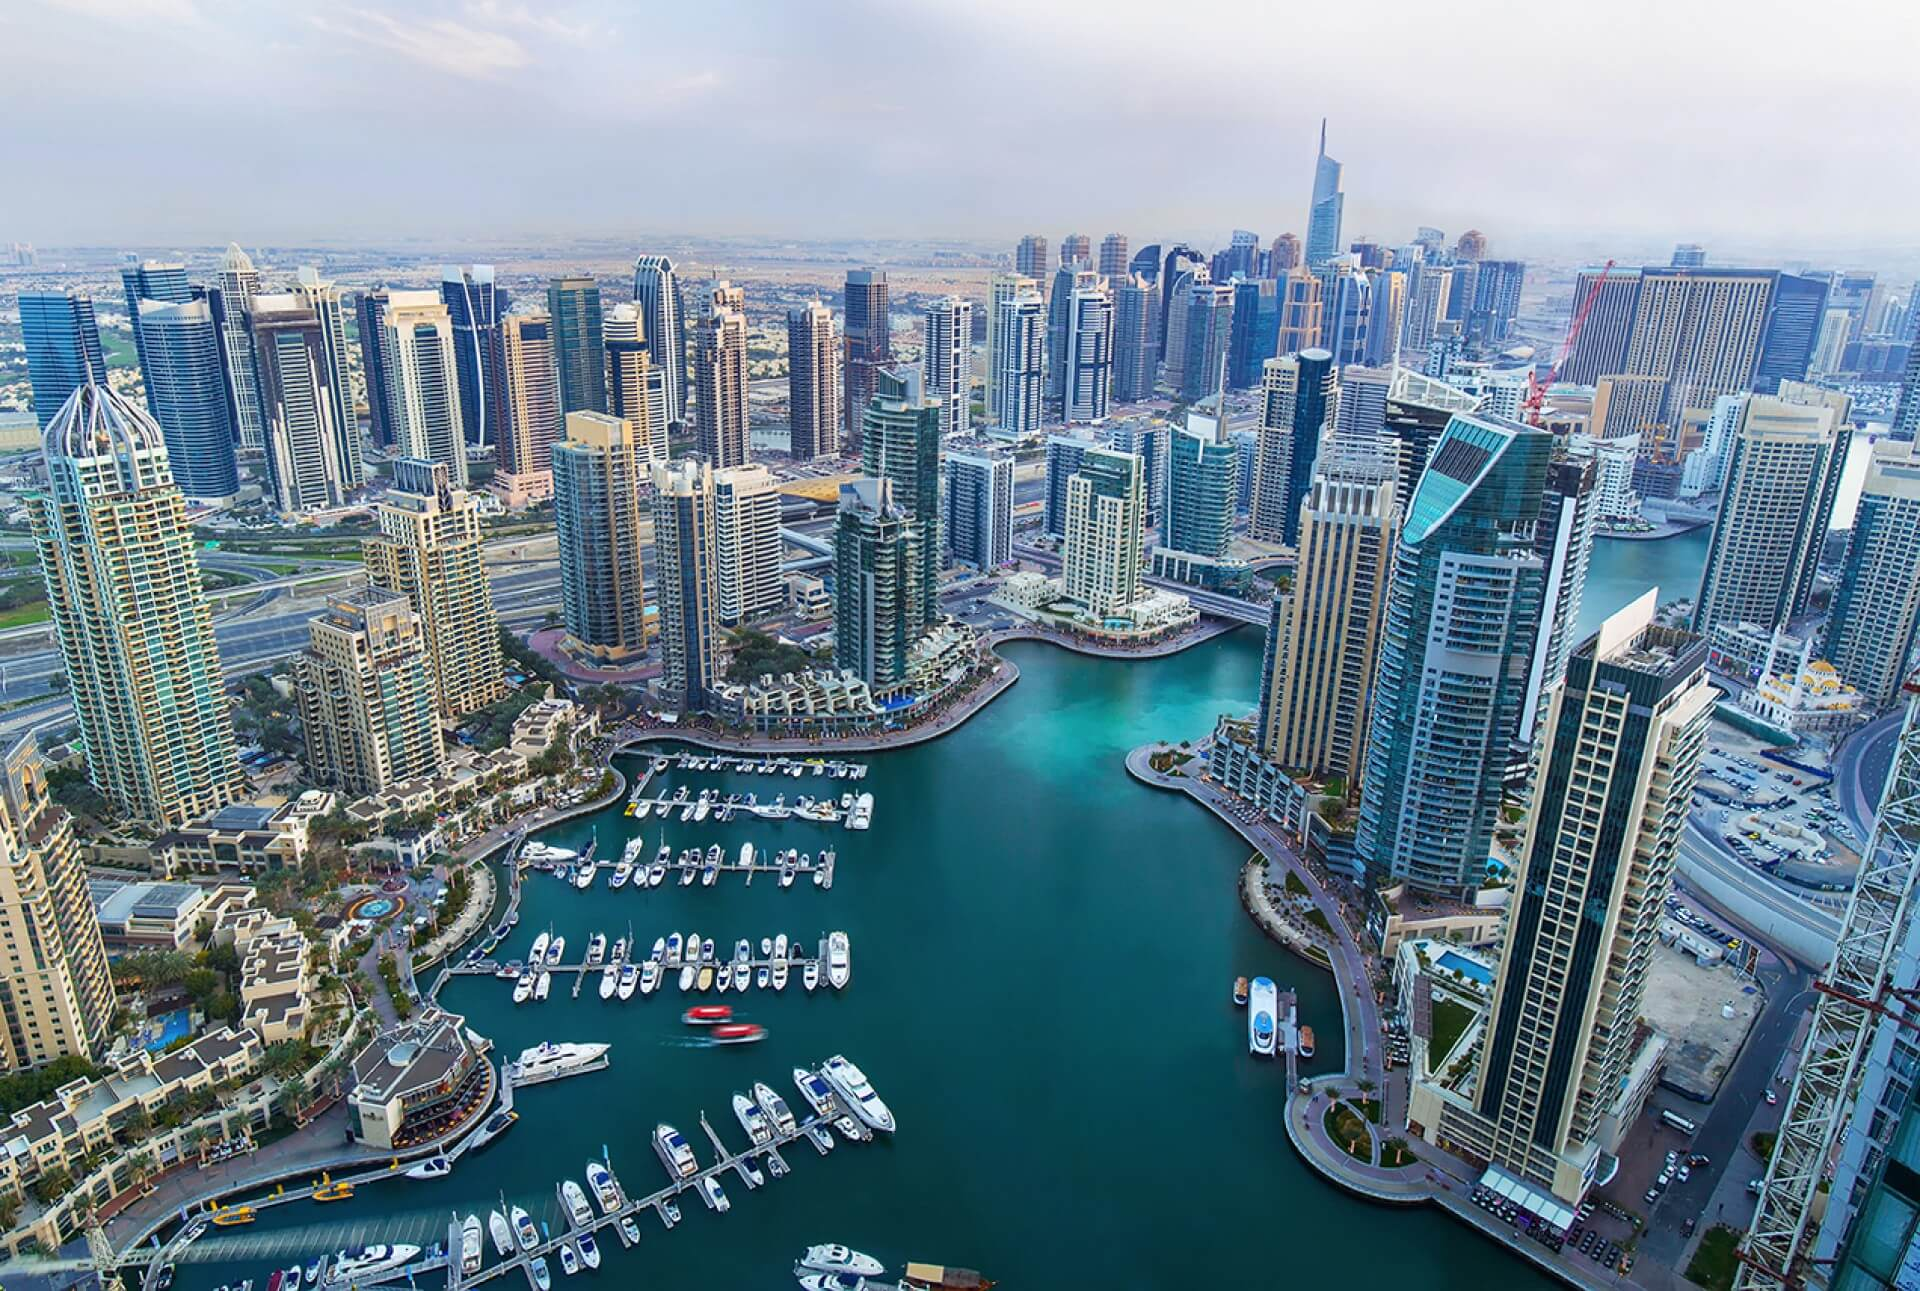 Dubai Takes The 15th Place In The Global Financial Centres Index